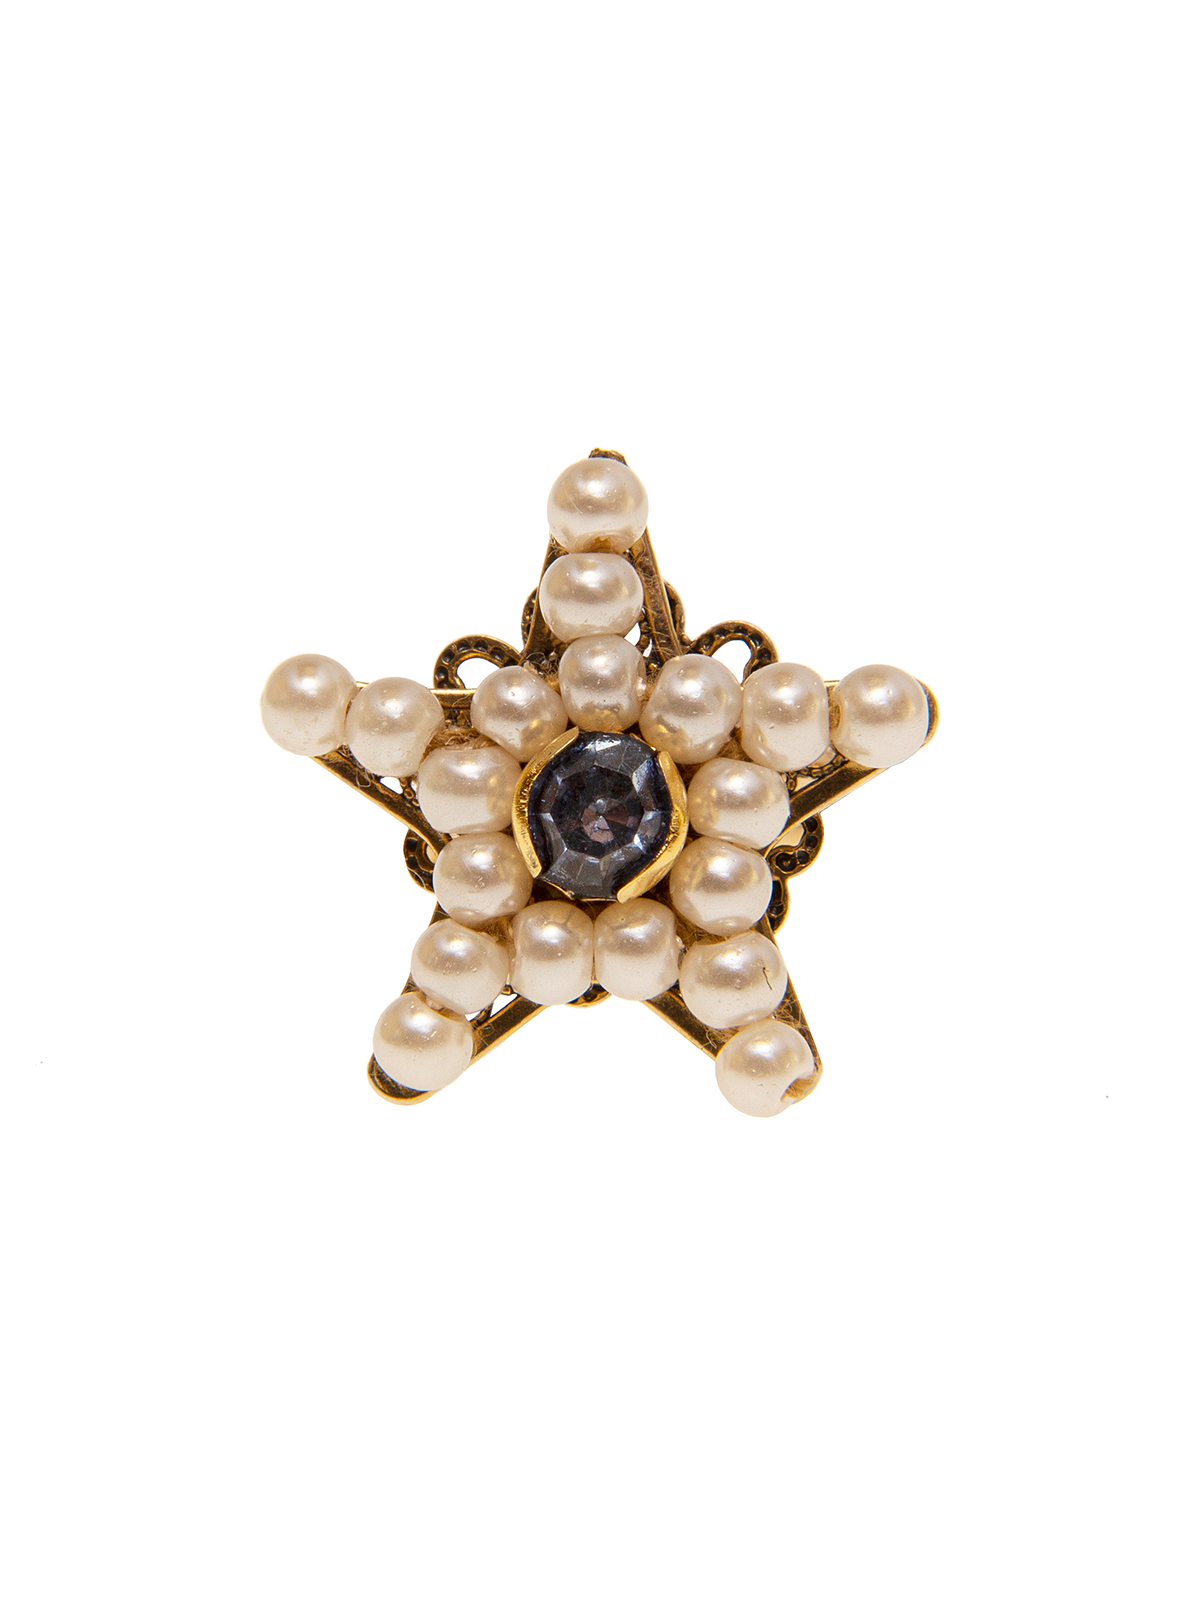 Star ring embellished with small pearls